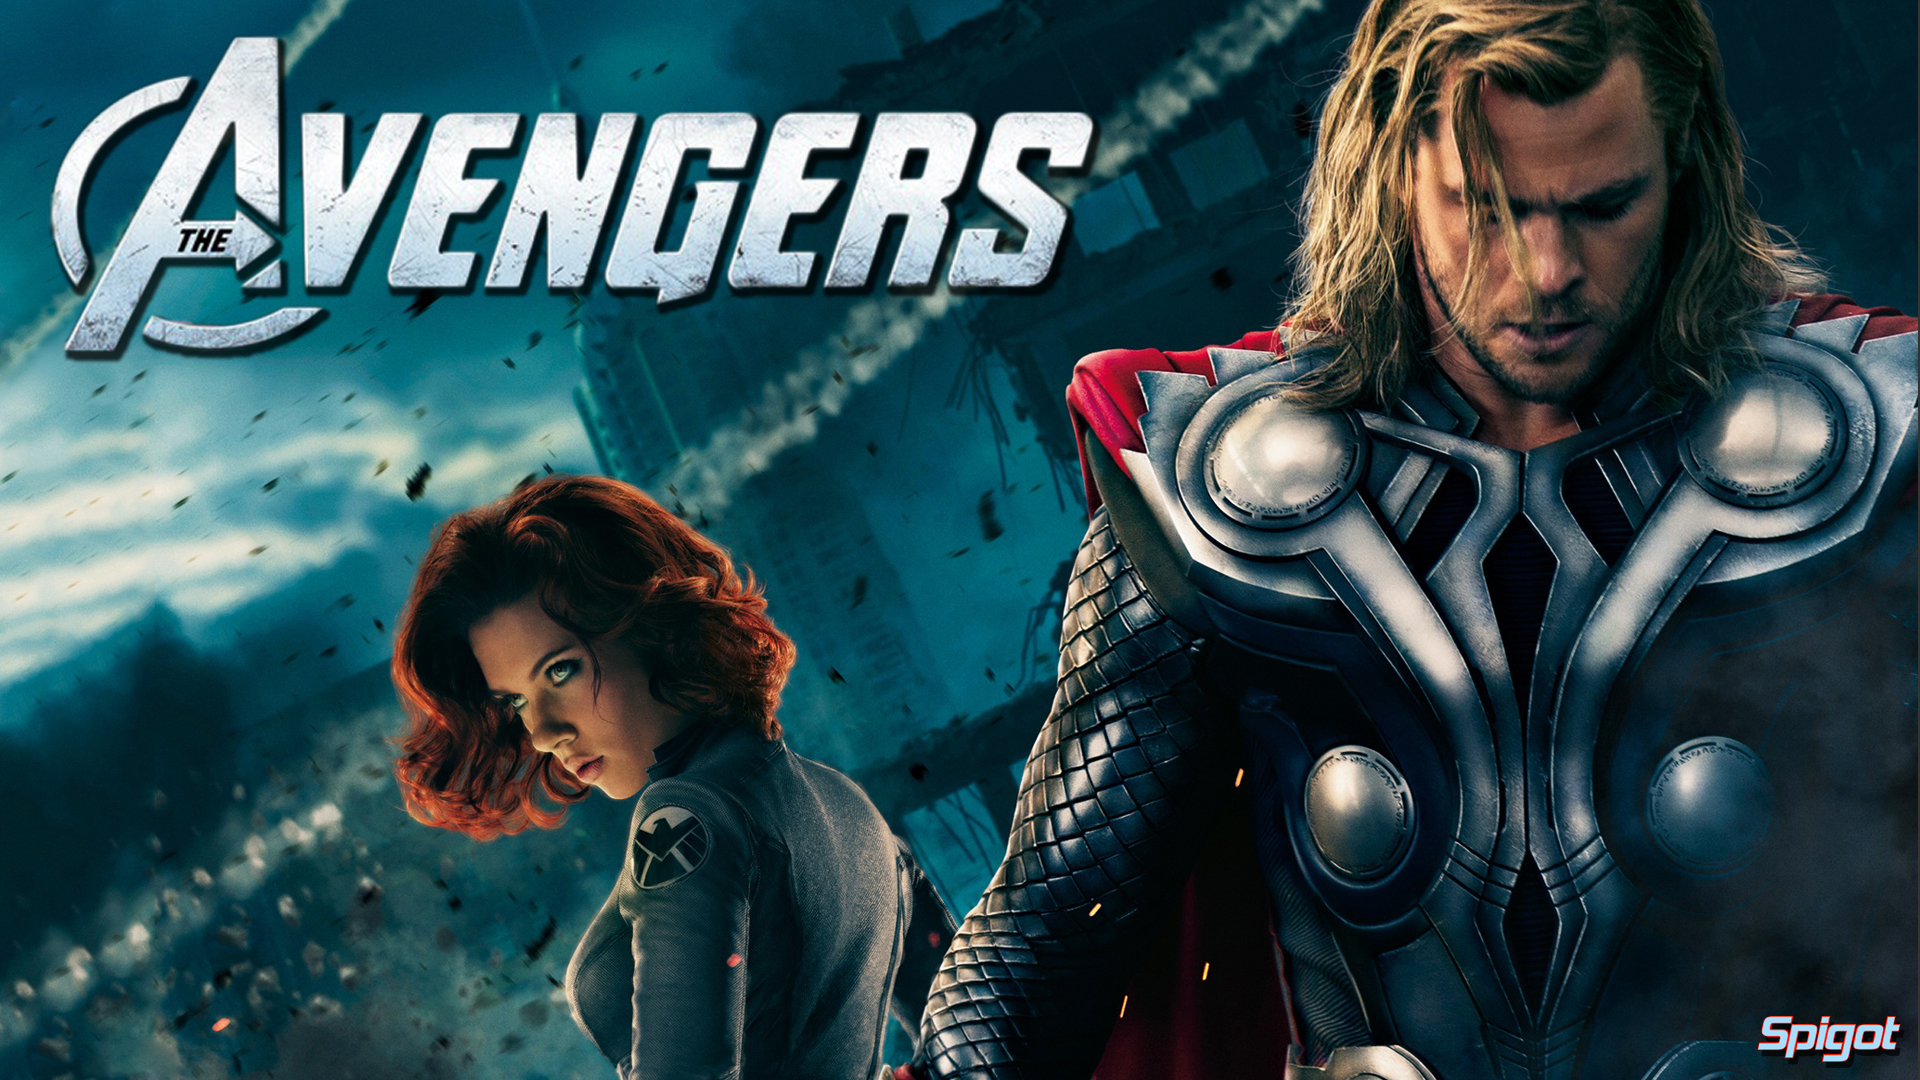 Just Incase You Havent Had Enough Of My Avengers Wallpapers Heres Yet Another This One Features Natasha Romanoff Black Widow Scarlett Johansson And